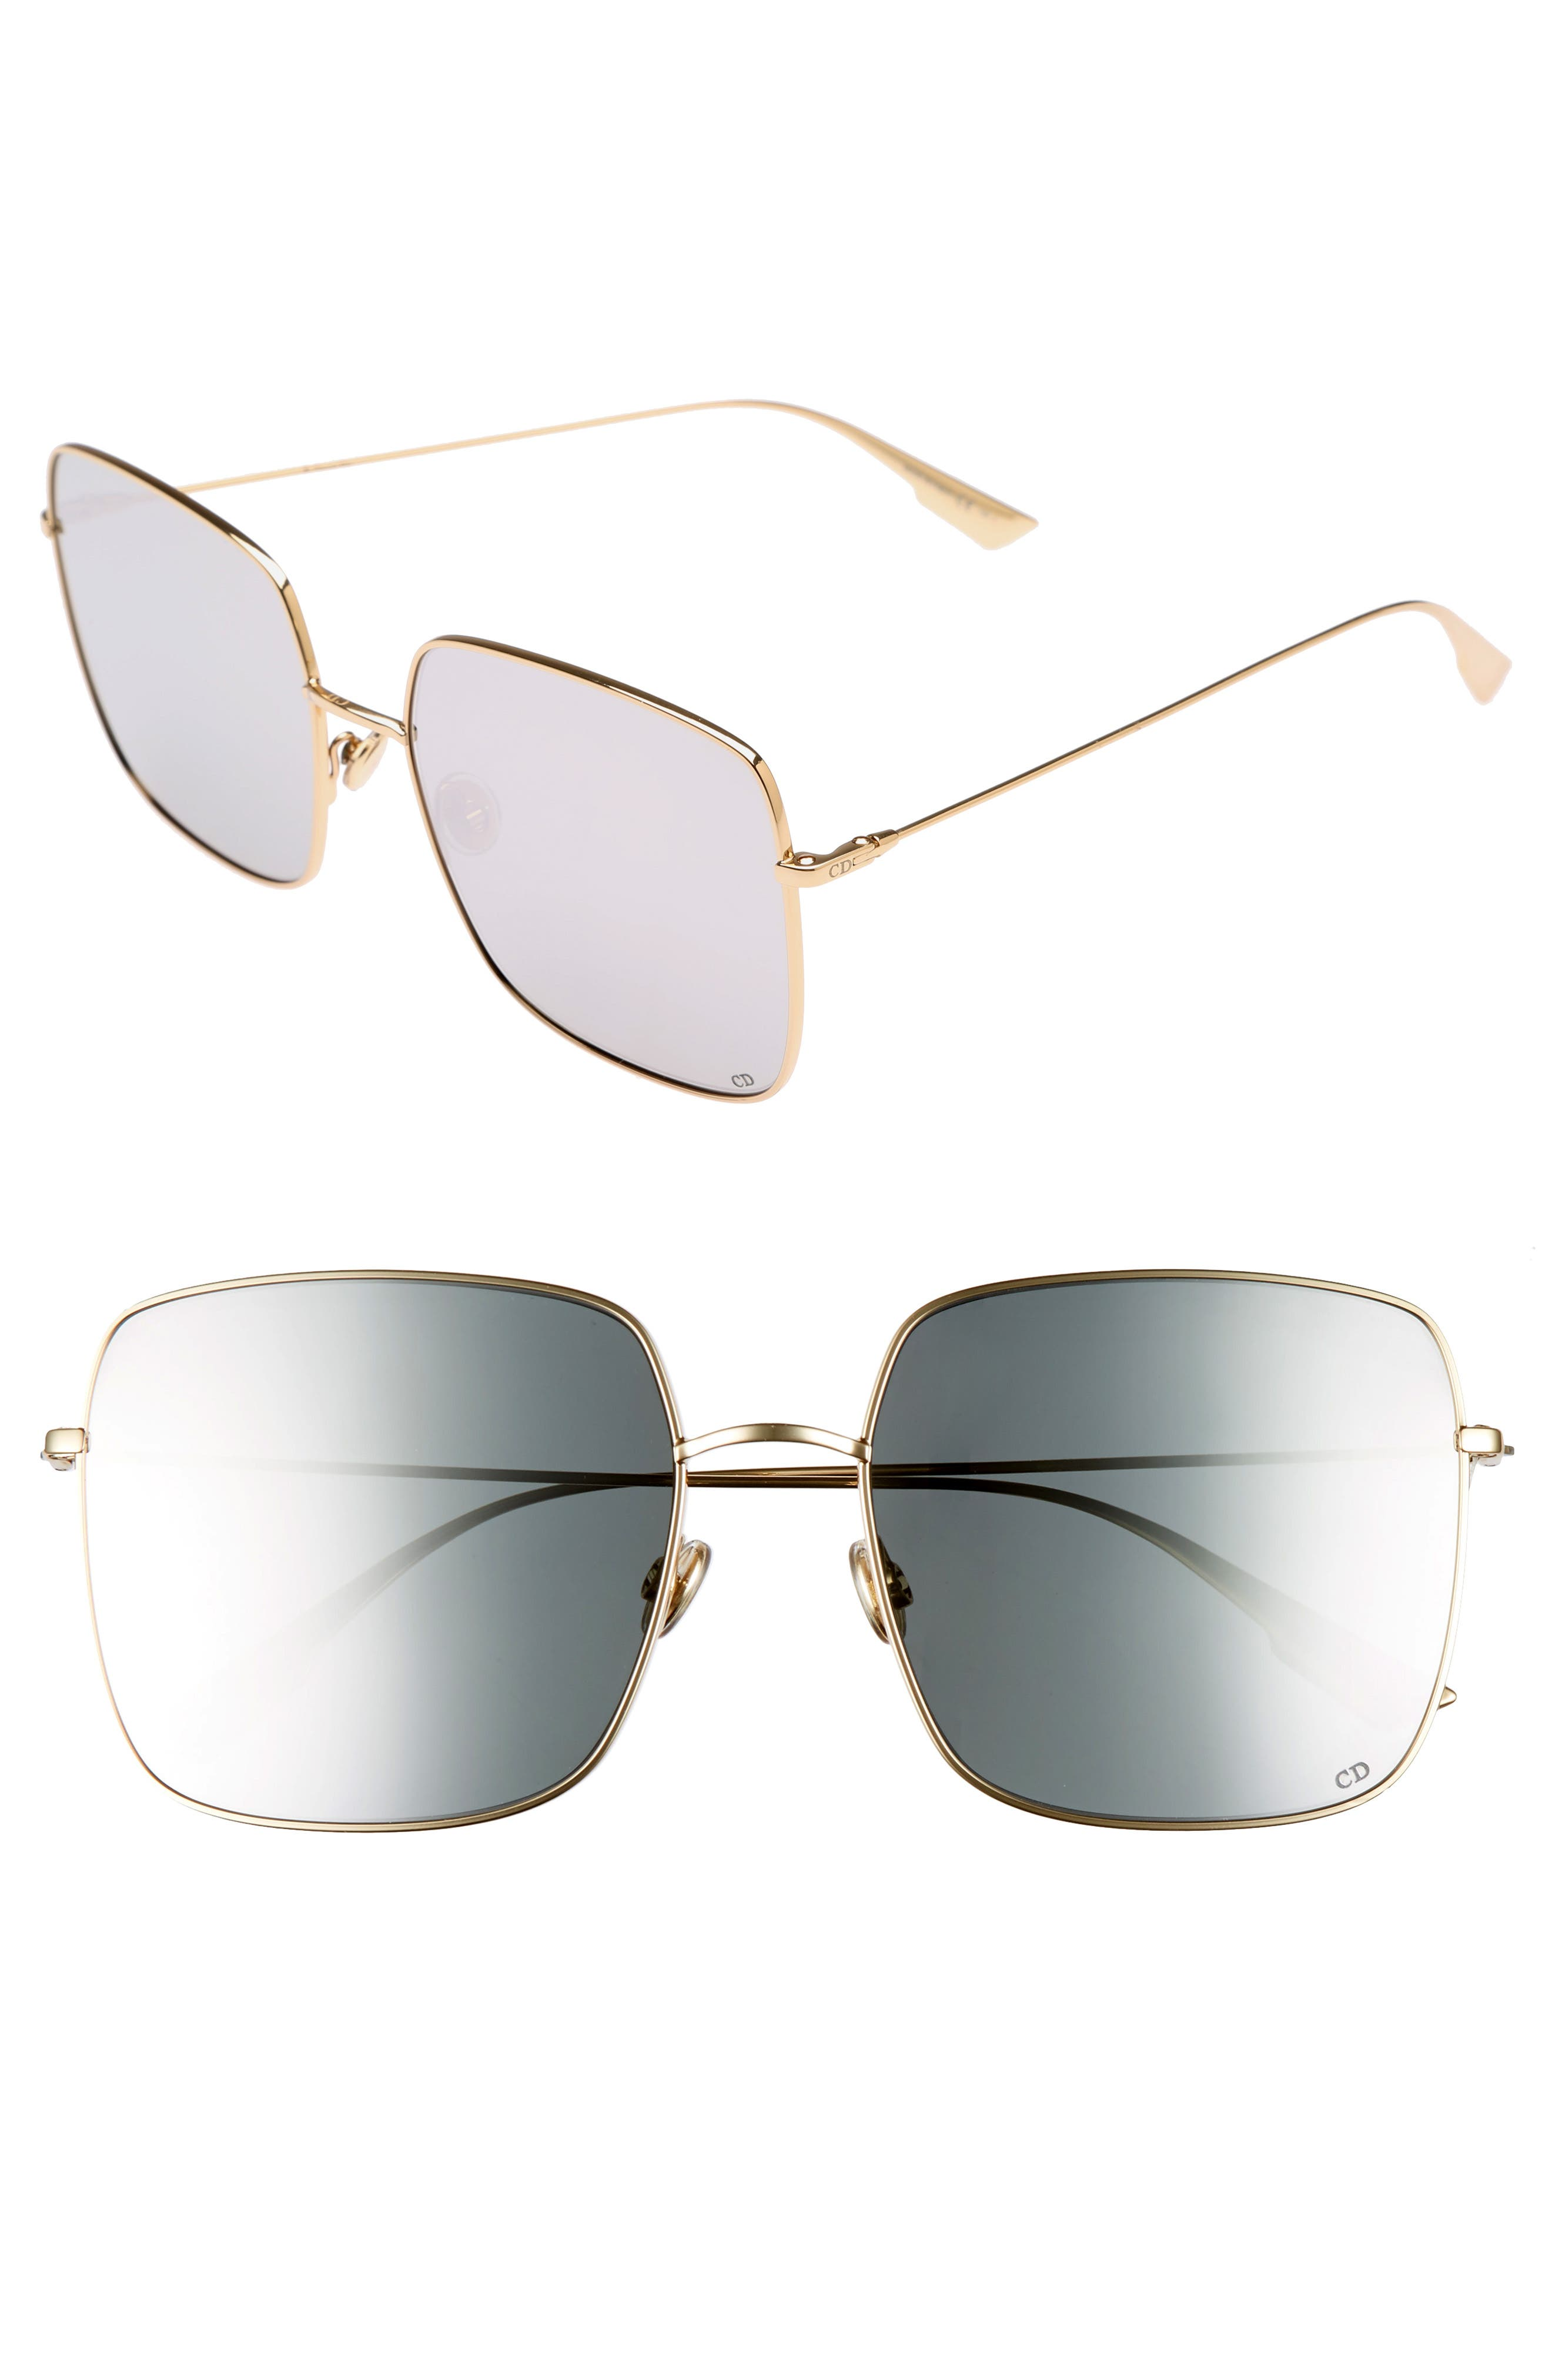 Alternate Image 1 Selected - Dior Stellaire 1 59mm Square Sunglasses